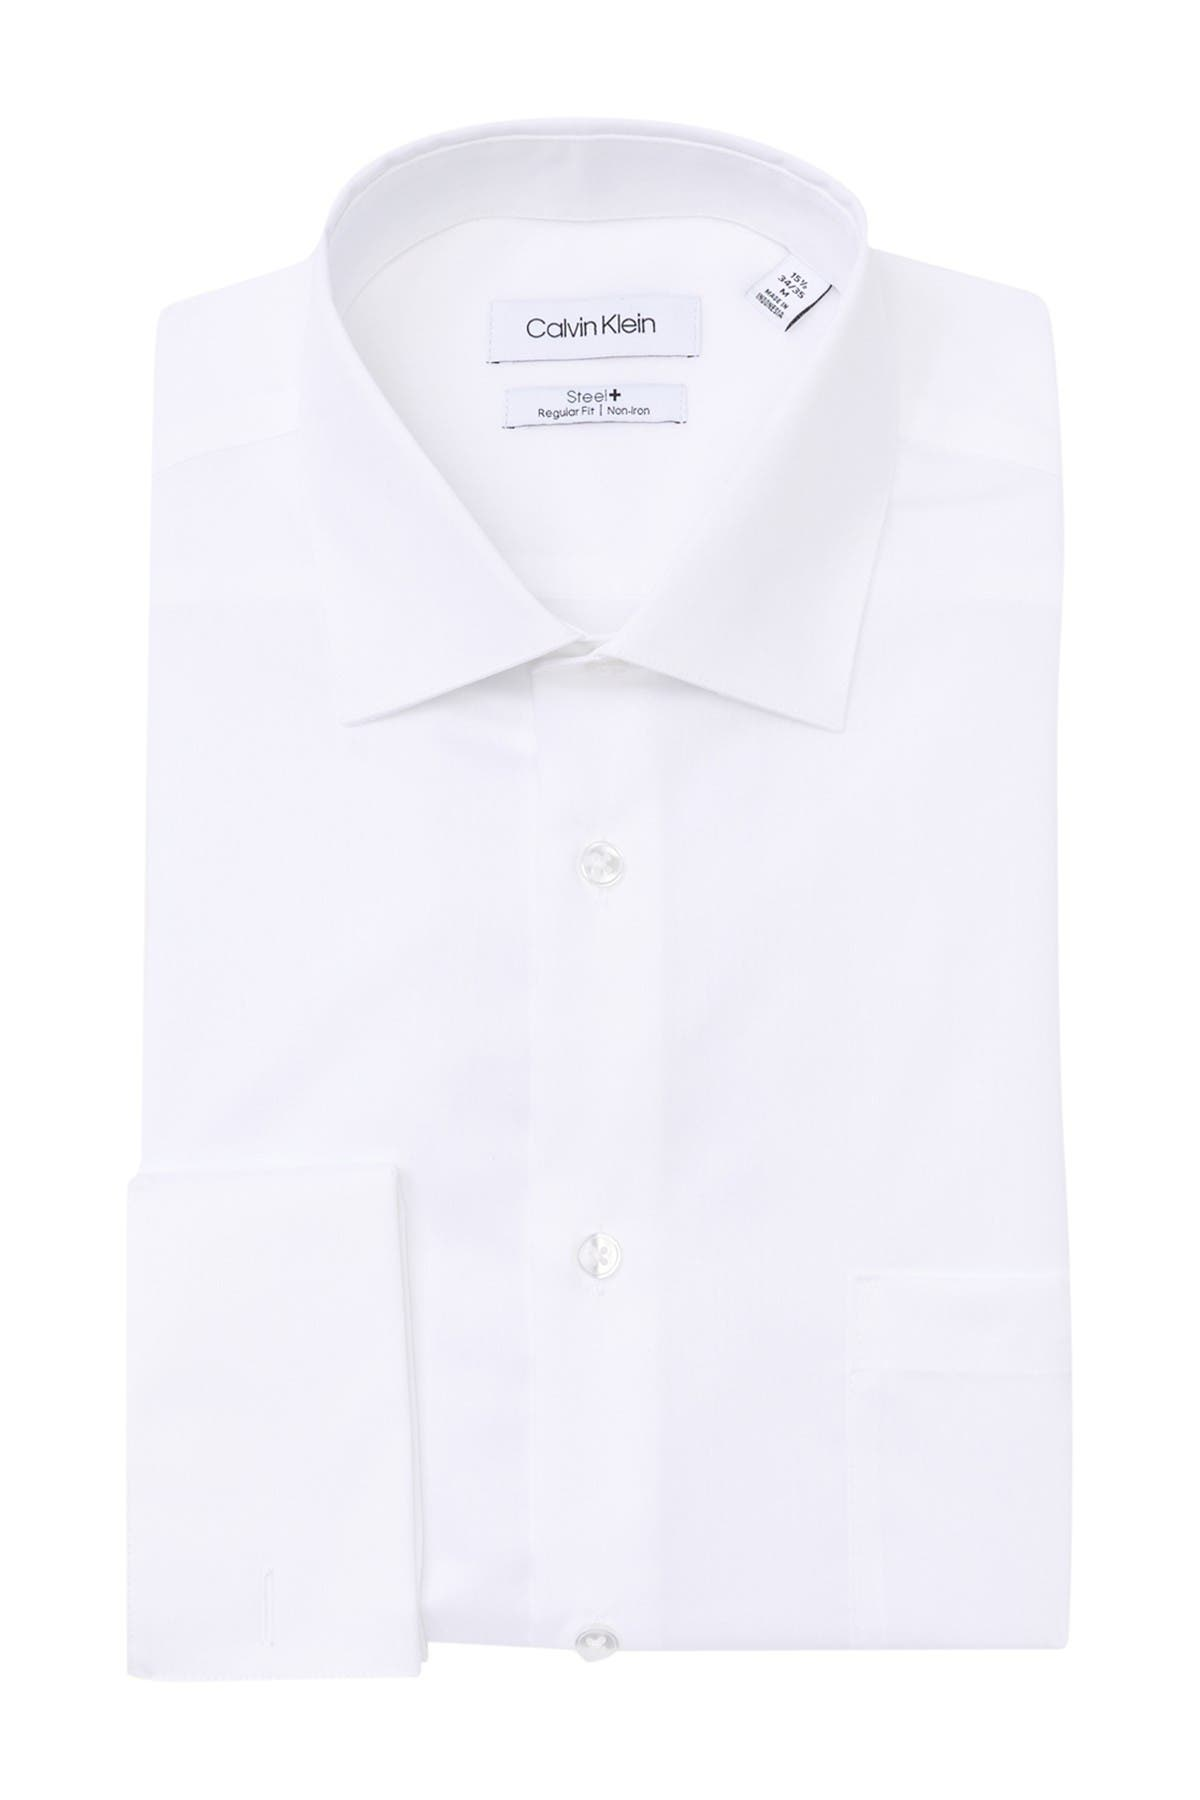 Image of Calvin Klein Steel+ Regular Fit Dress Shirt